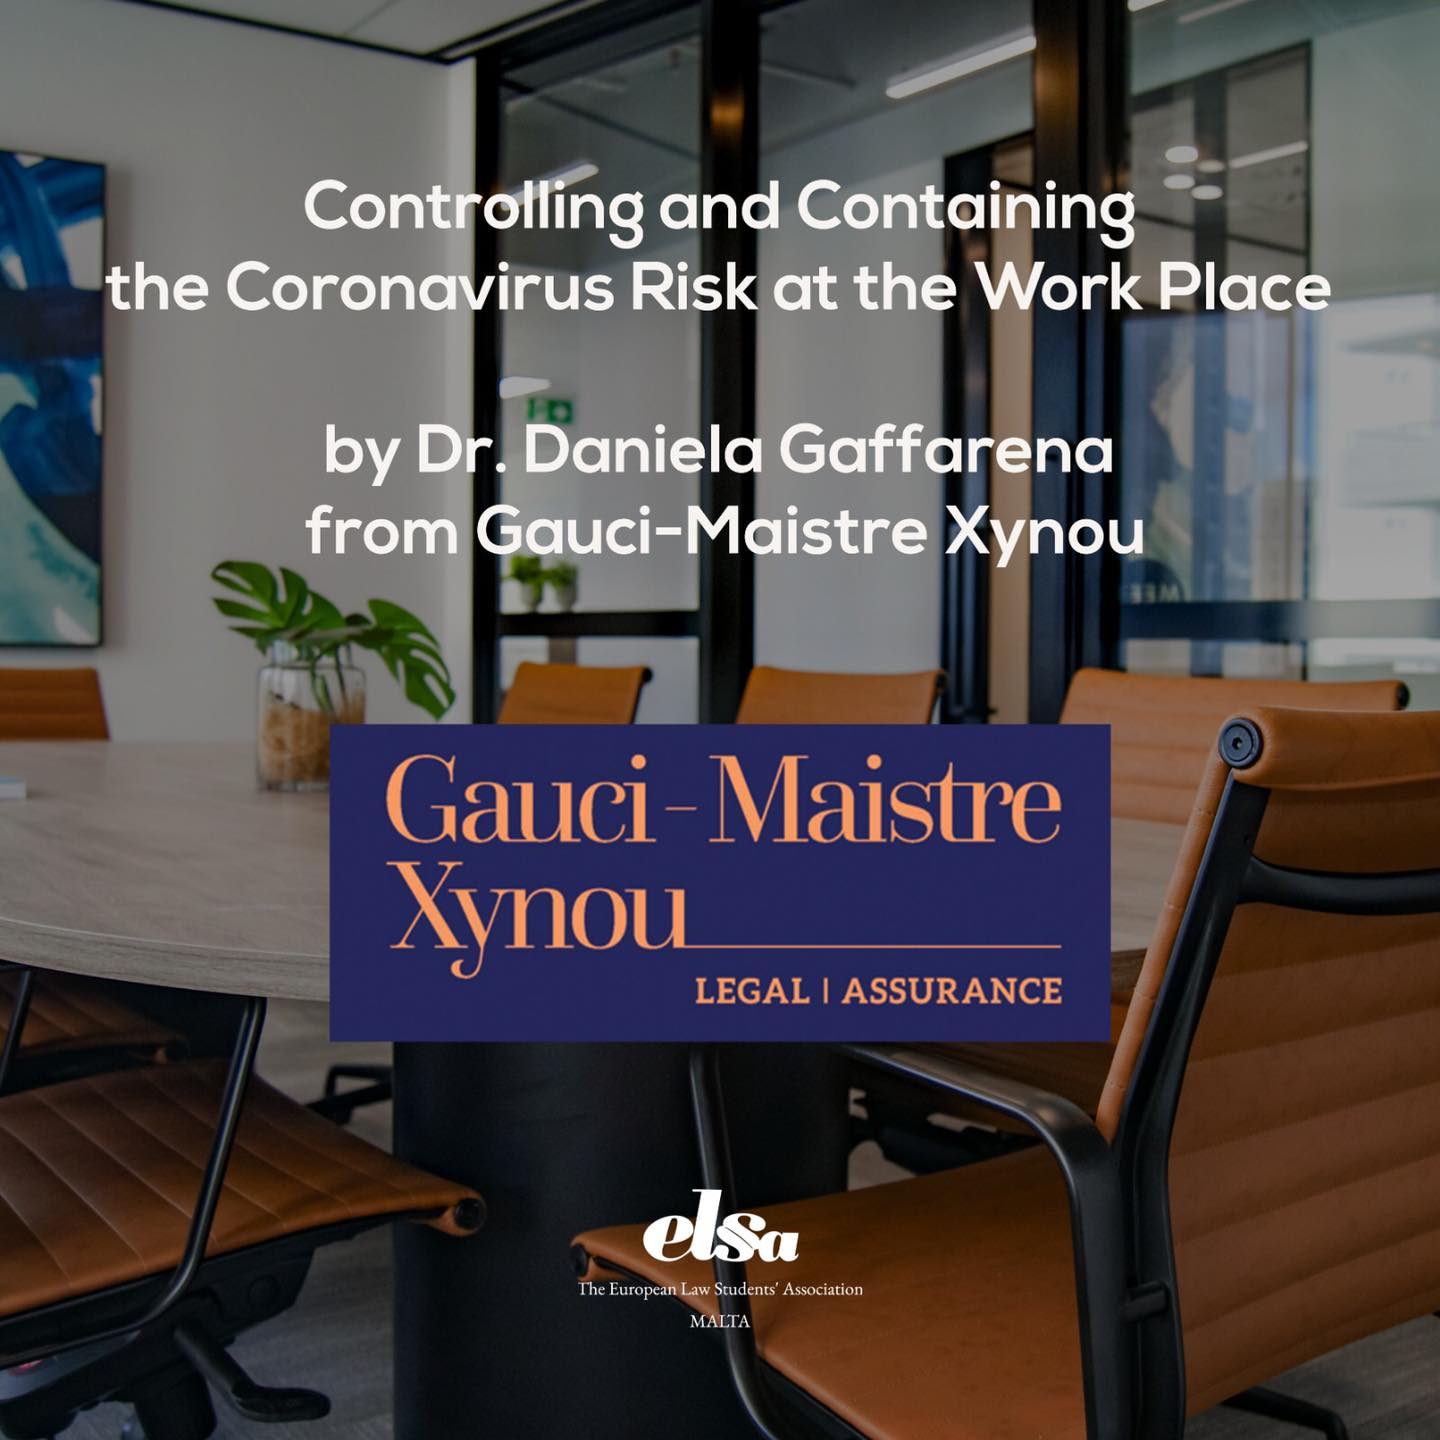 Controlling and Containing the Coronavirus Risk at the Work Place